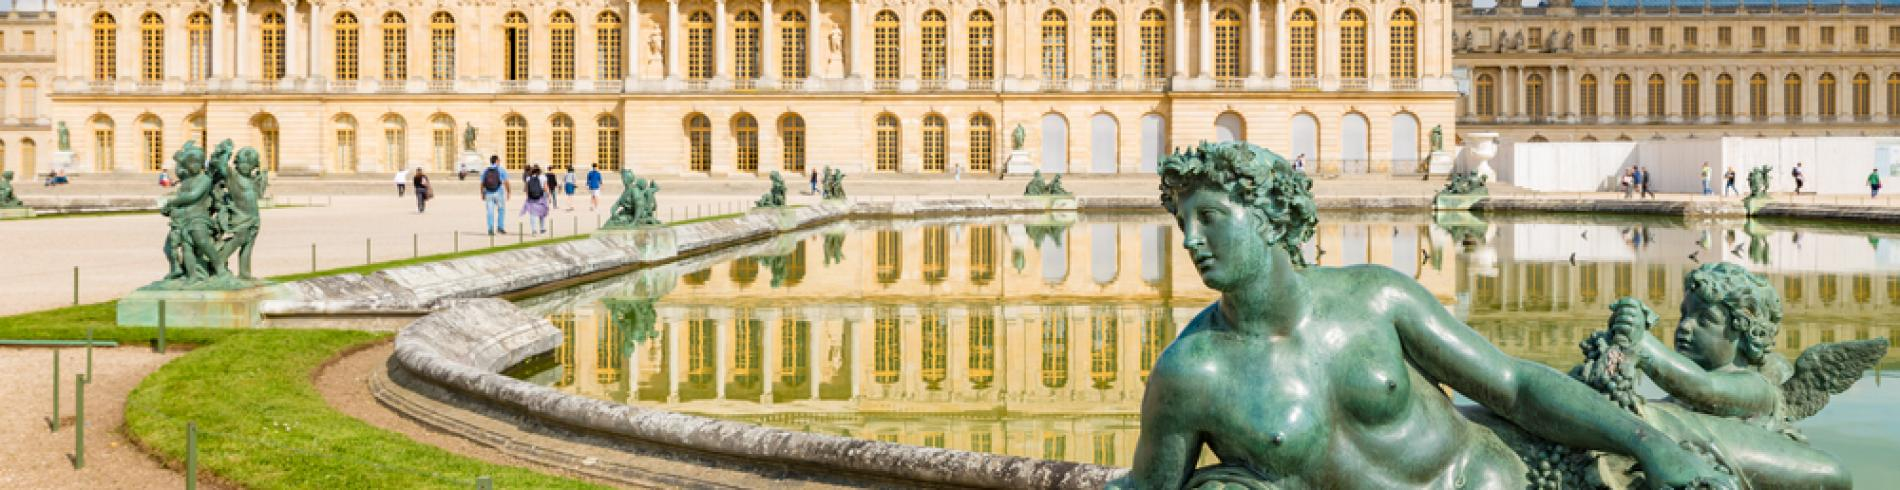 The Royal Palace of Versailles in France